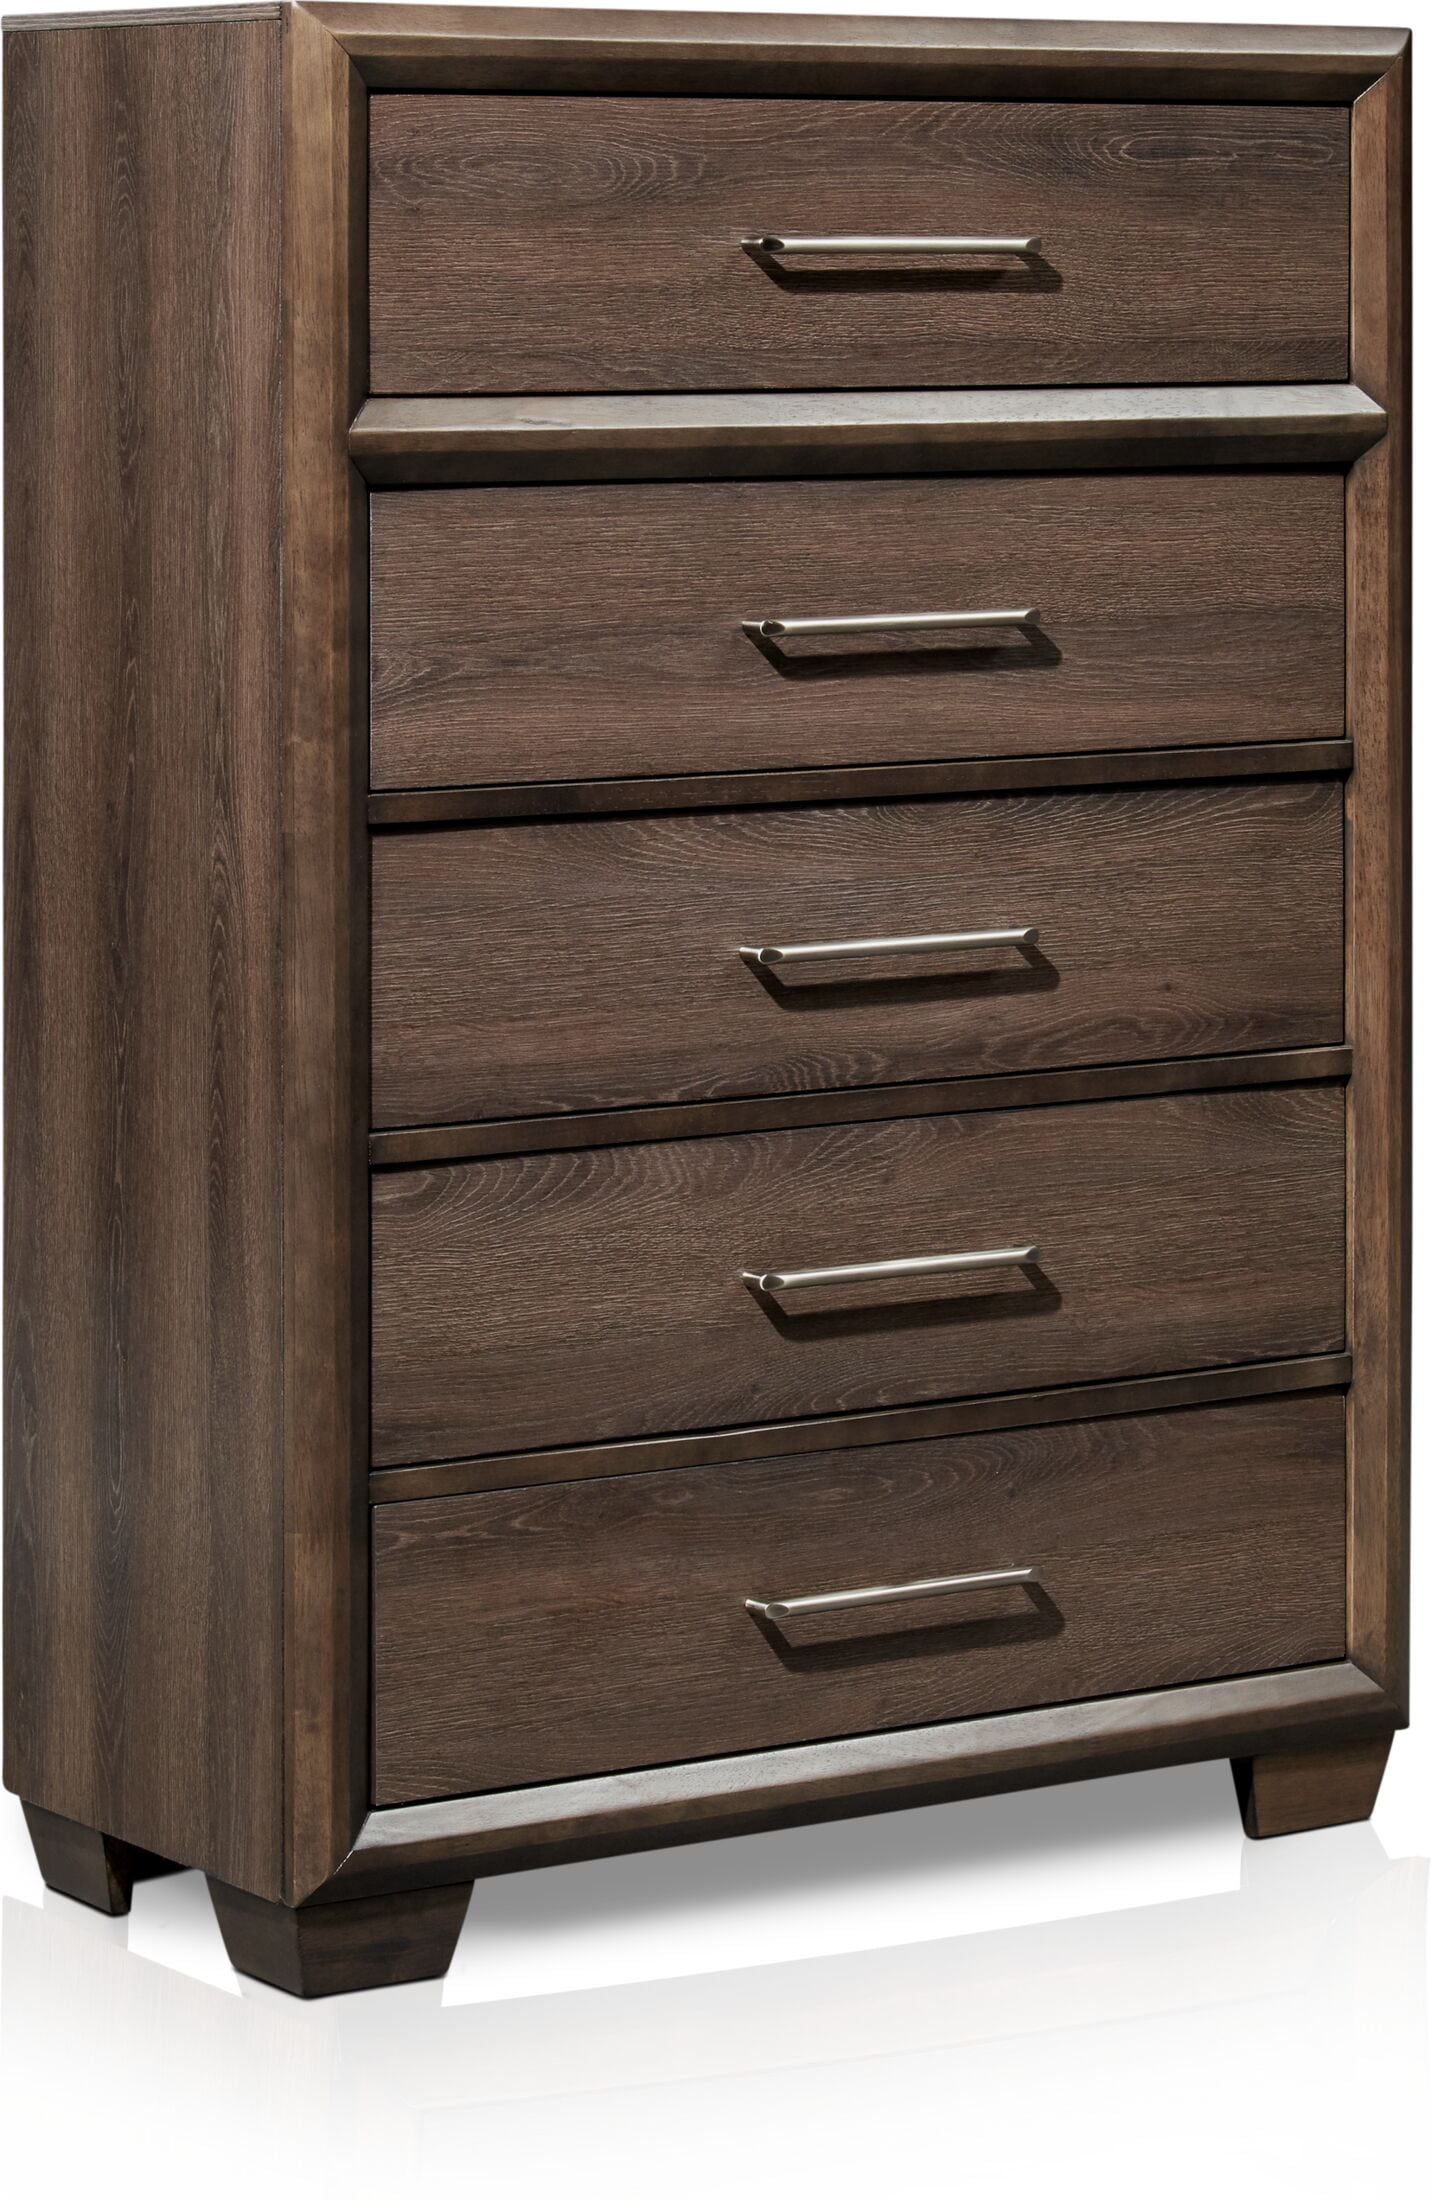 Bedroom Furniture - Dakota Chest